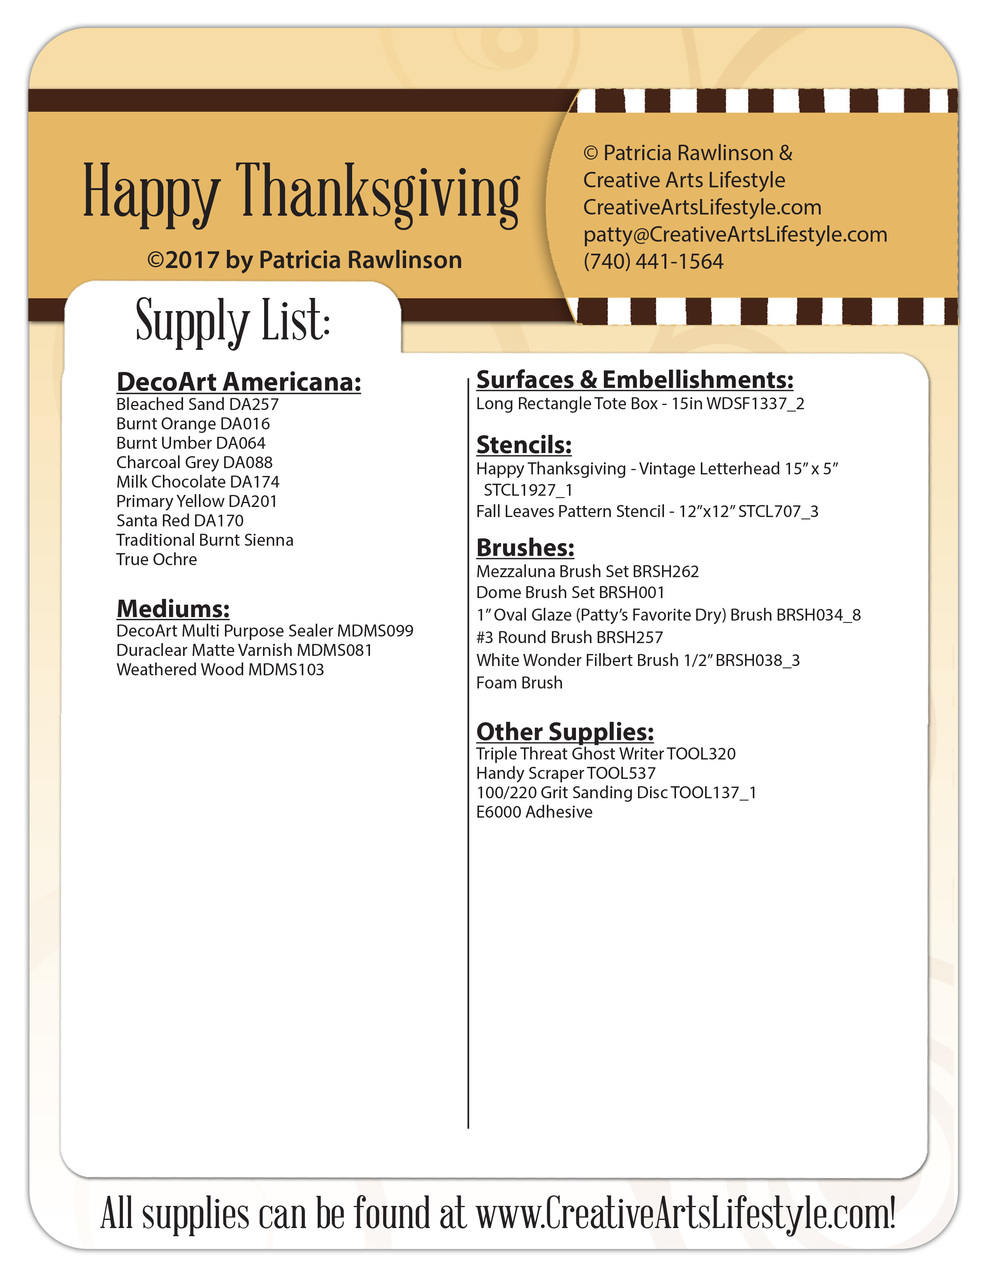 Happy Thanksgiving - DVD and Pattern Packet - Patricia Rawlinson